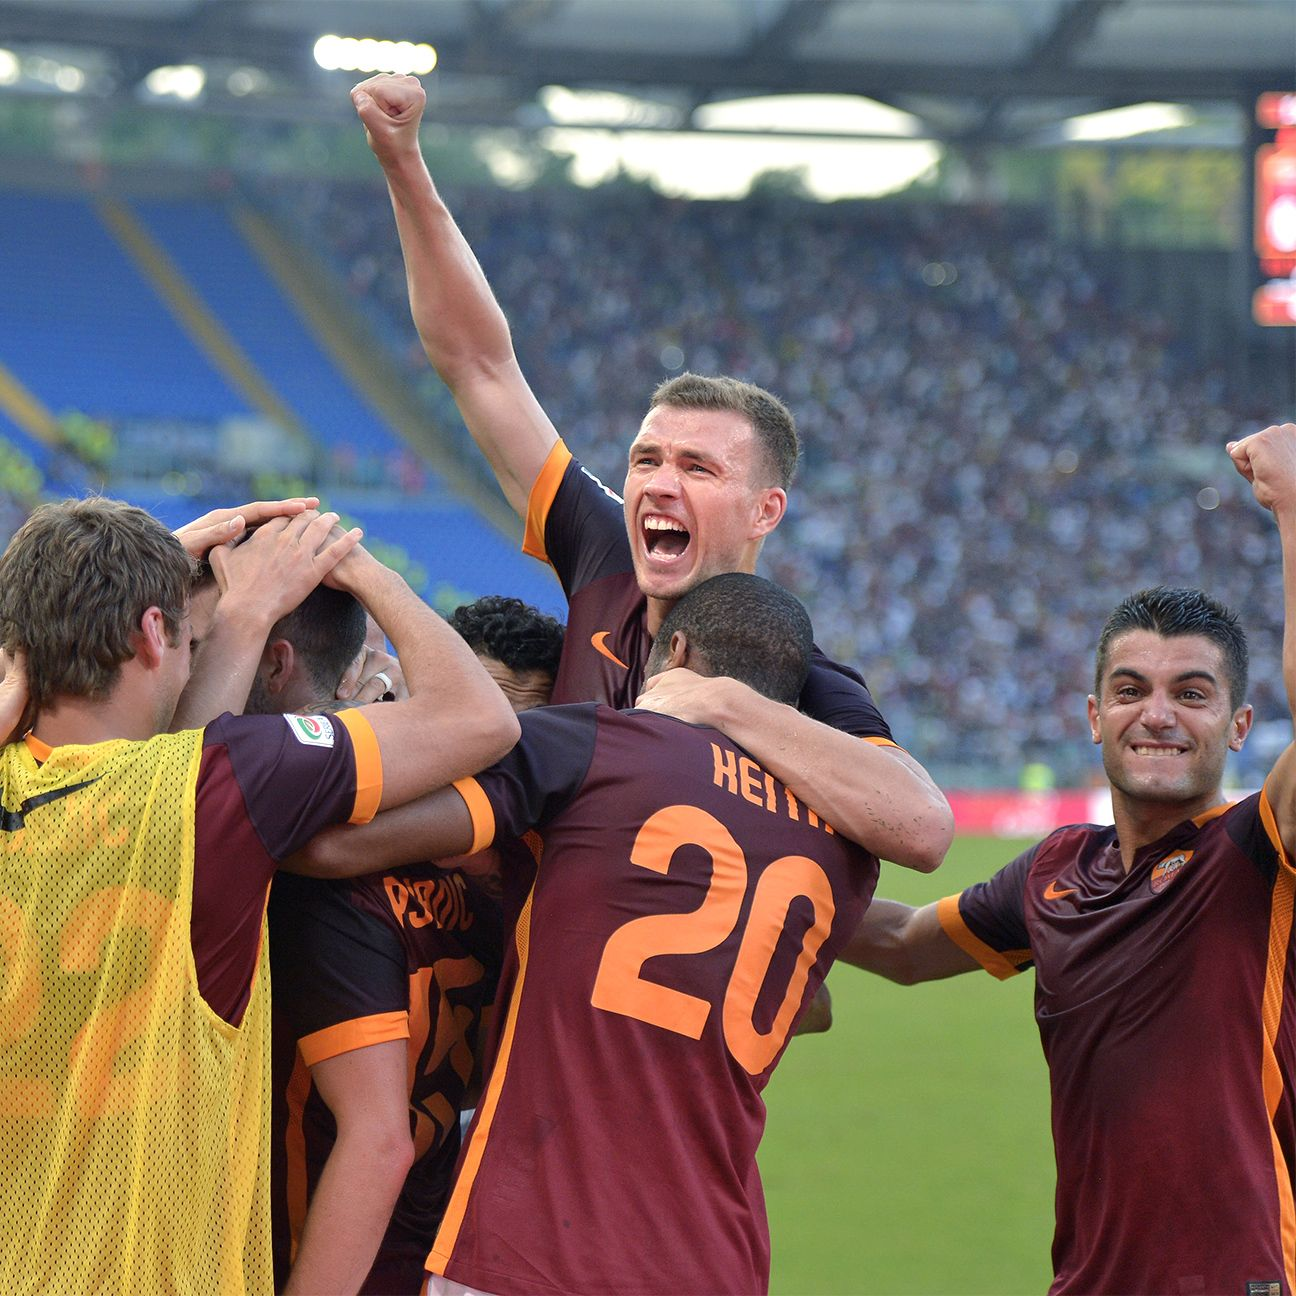 New arrival Edin Dzeko has Roma dreaming of domestic greatness.